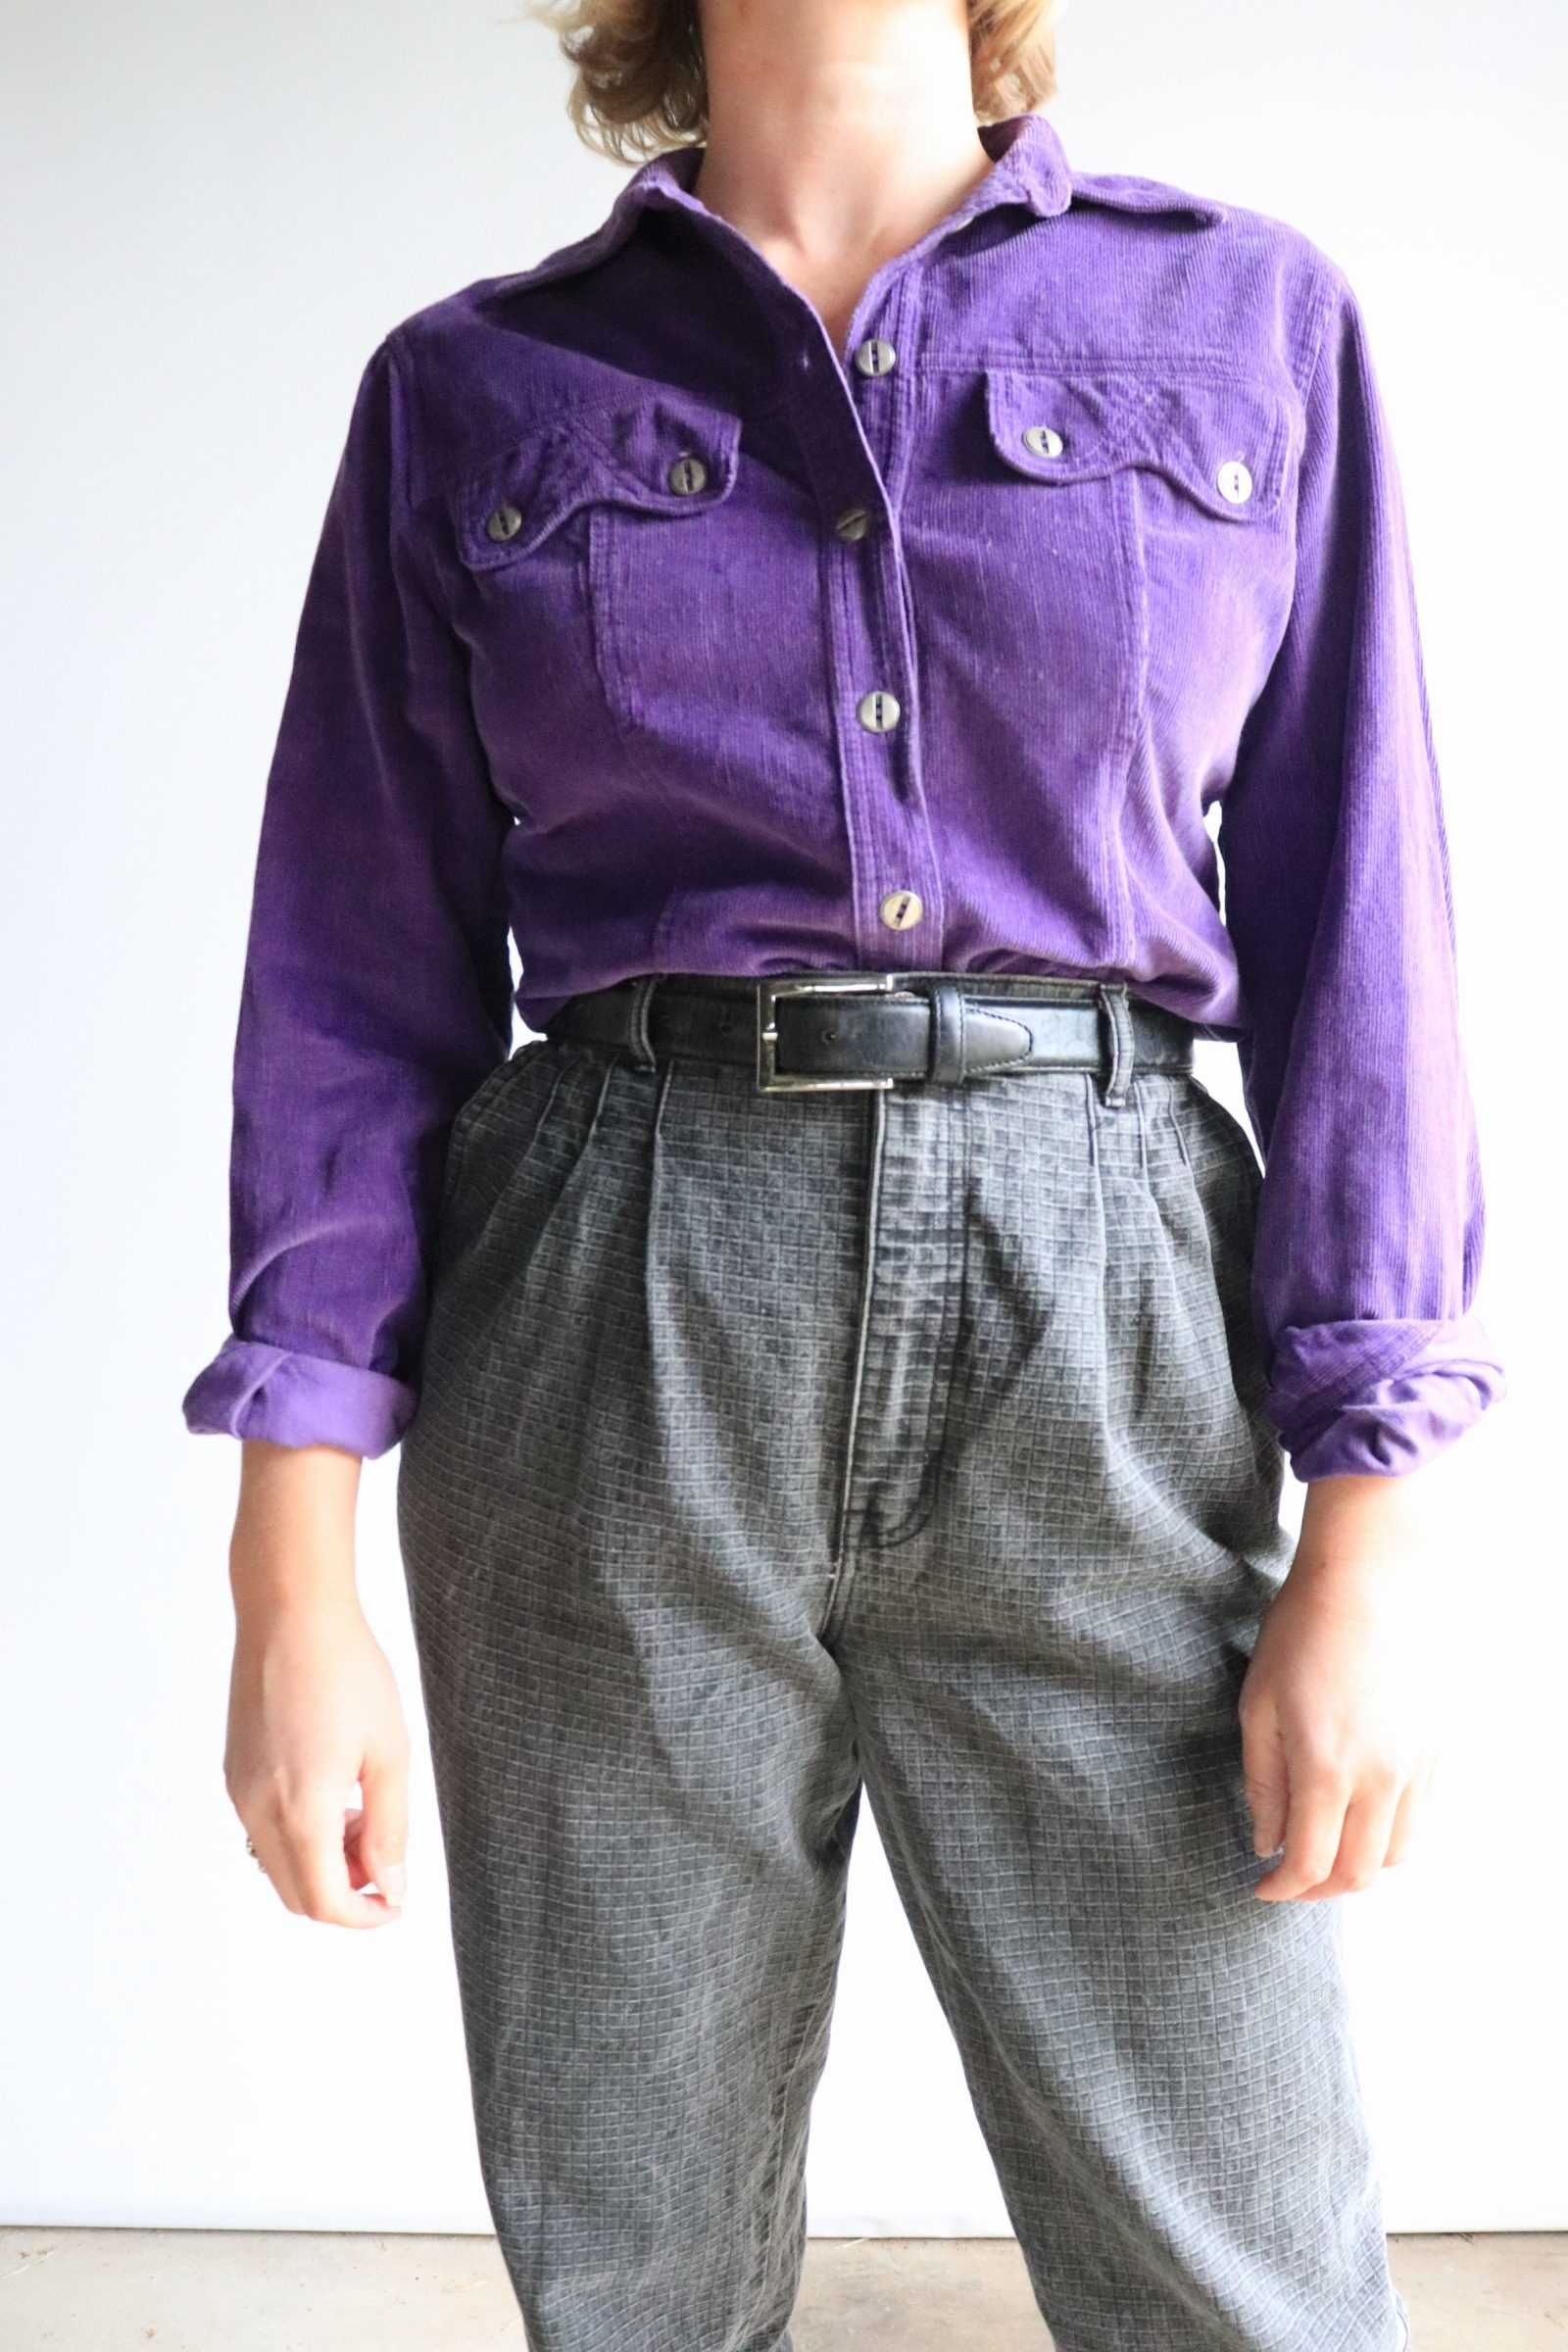 90s purple corduroy shirt